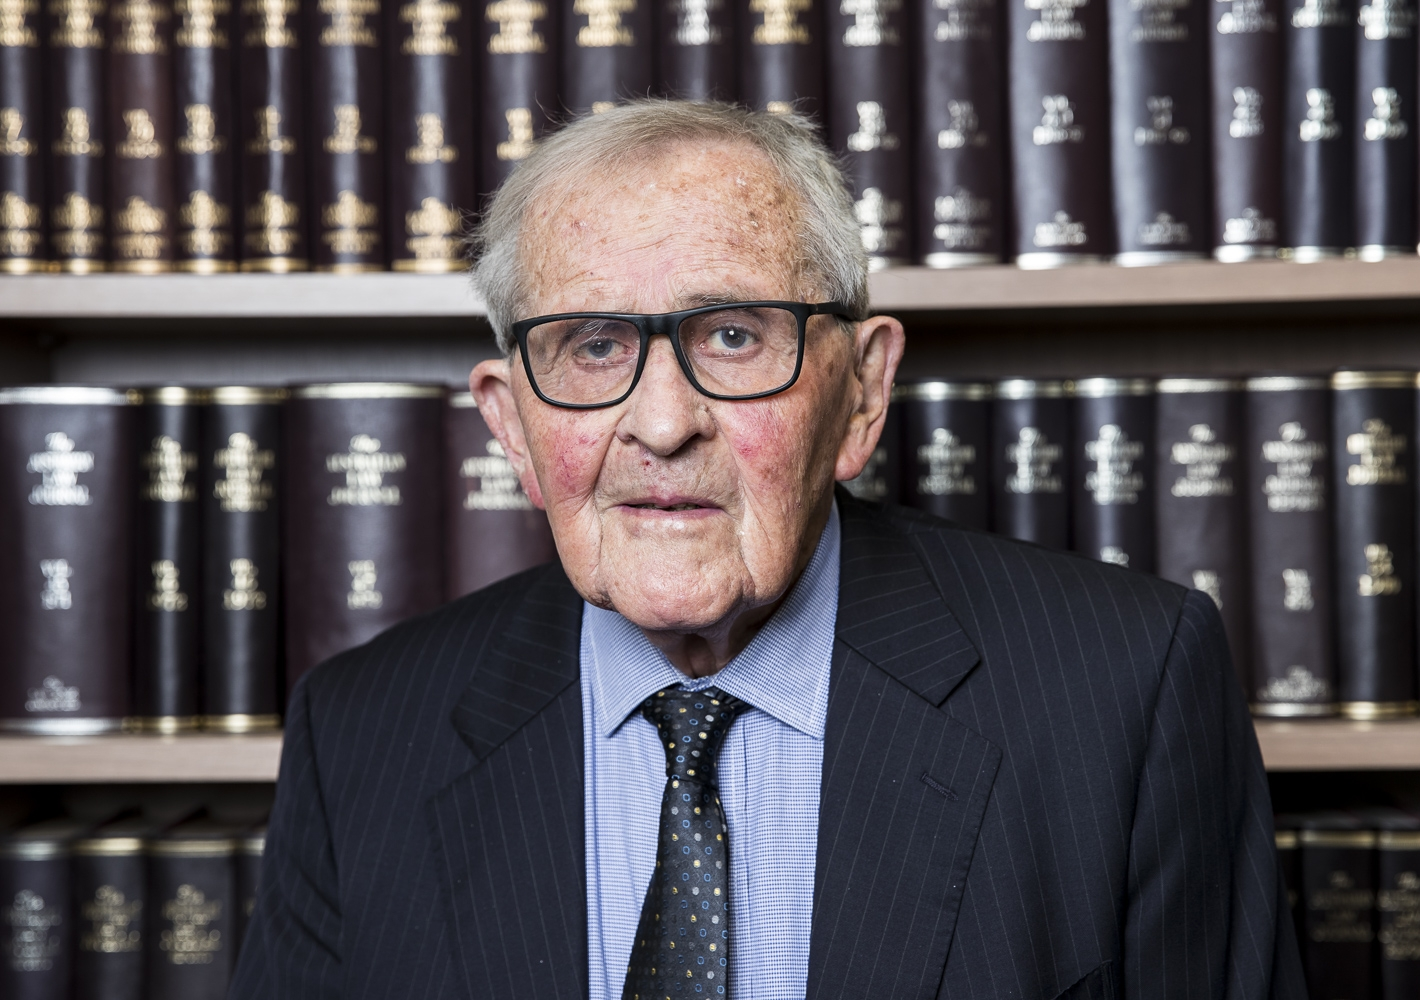 Emeritus Professor Hal Wootten AC QC, founding Dean of UNSW Law & Justice. Photo: Supplied.